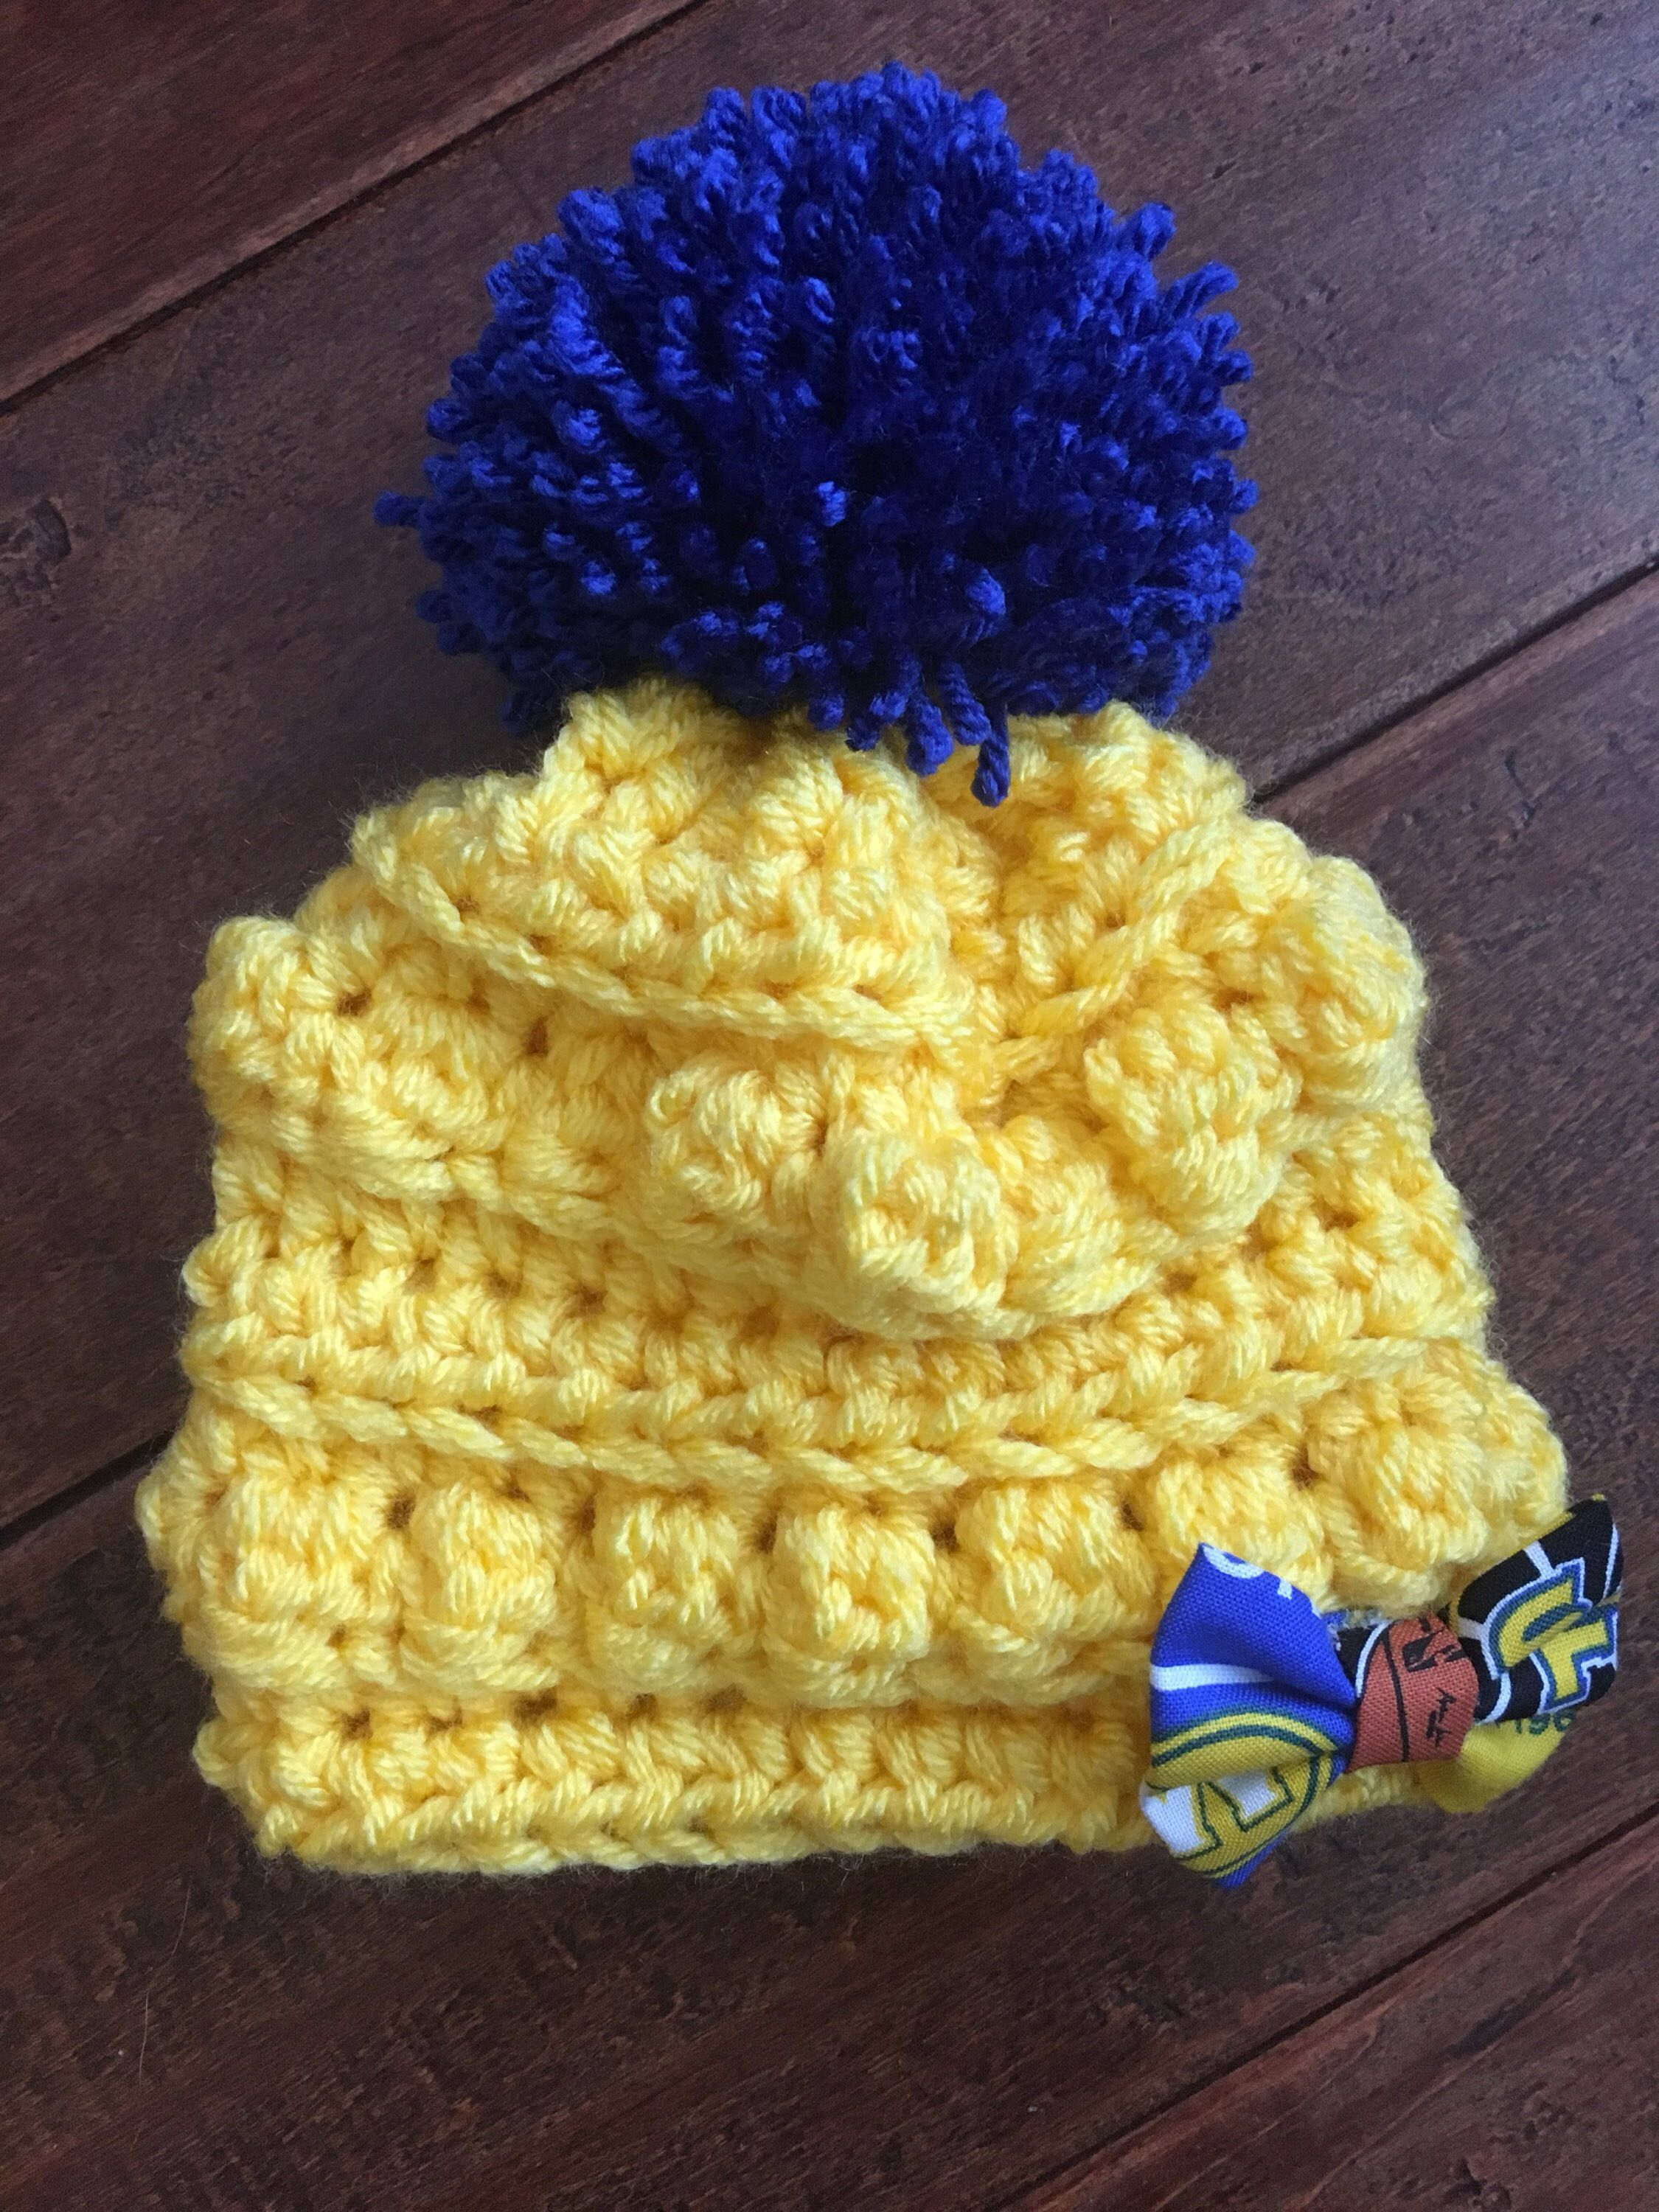 2b1716956d6f0c Golden state warriors Crocheted chunky baby beanie with pom pom. Winter baby  hat. Perfect gift for her. Crochet slouchy hat. Crocheted beanie.